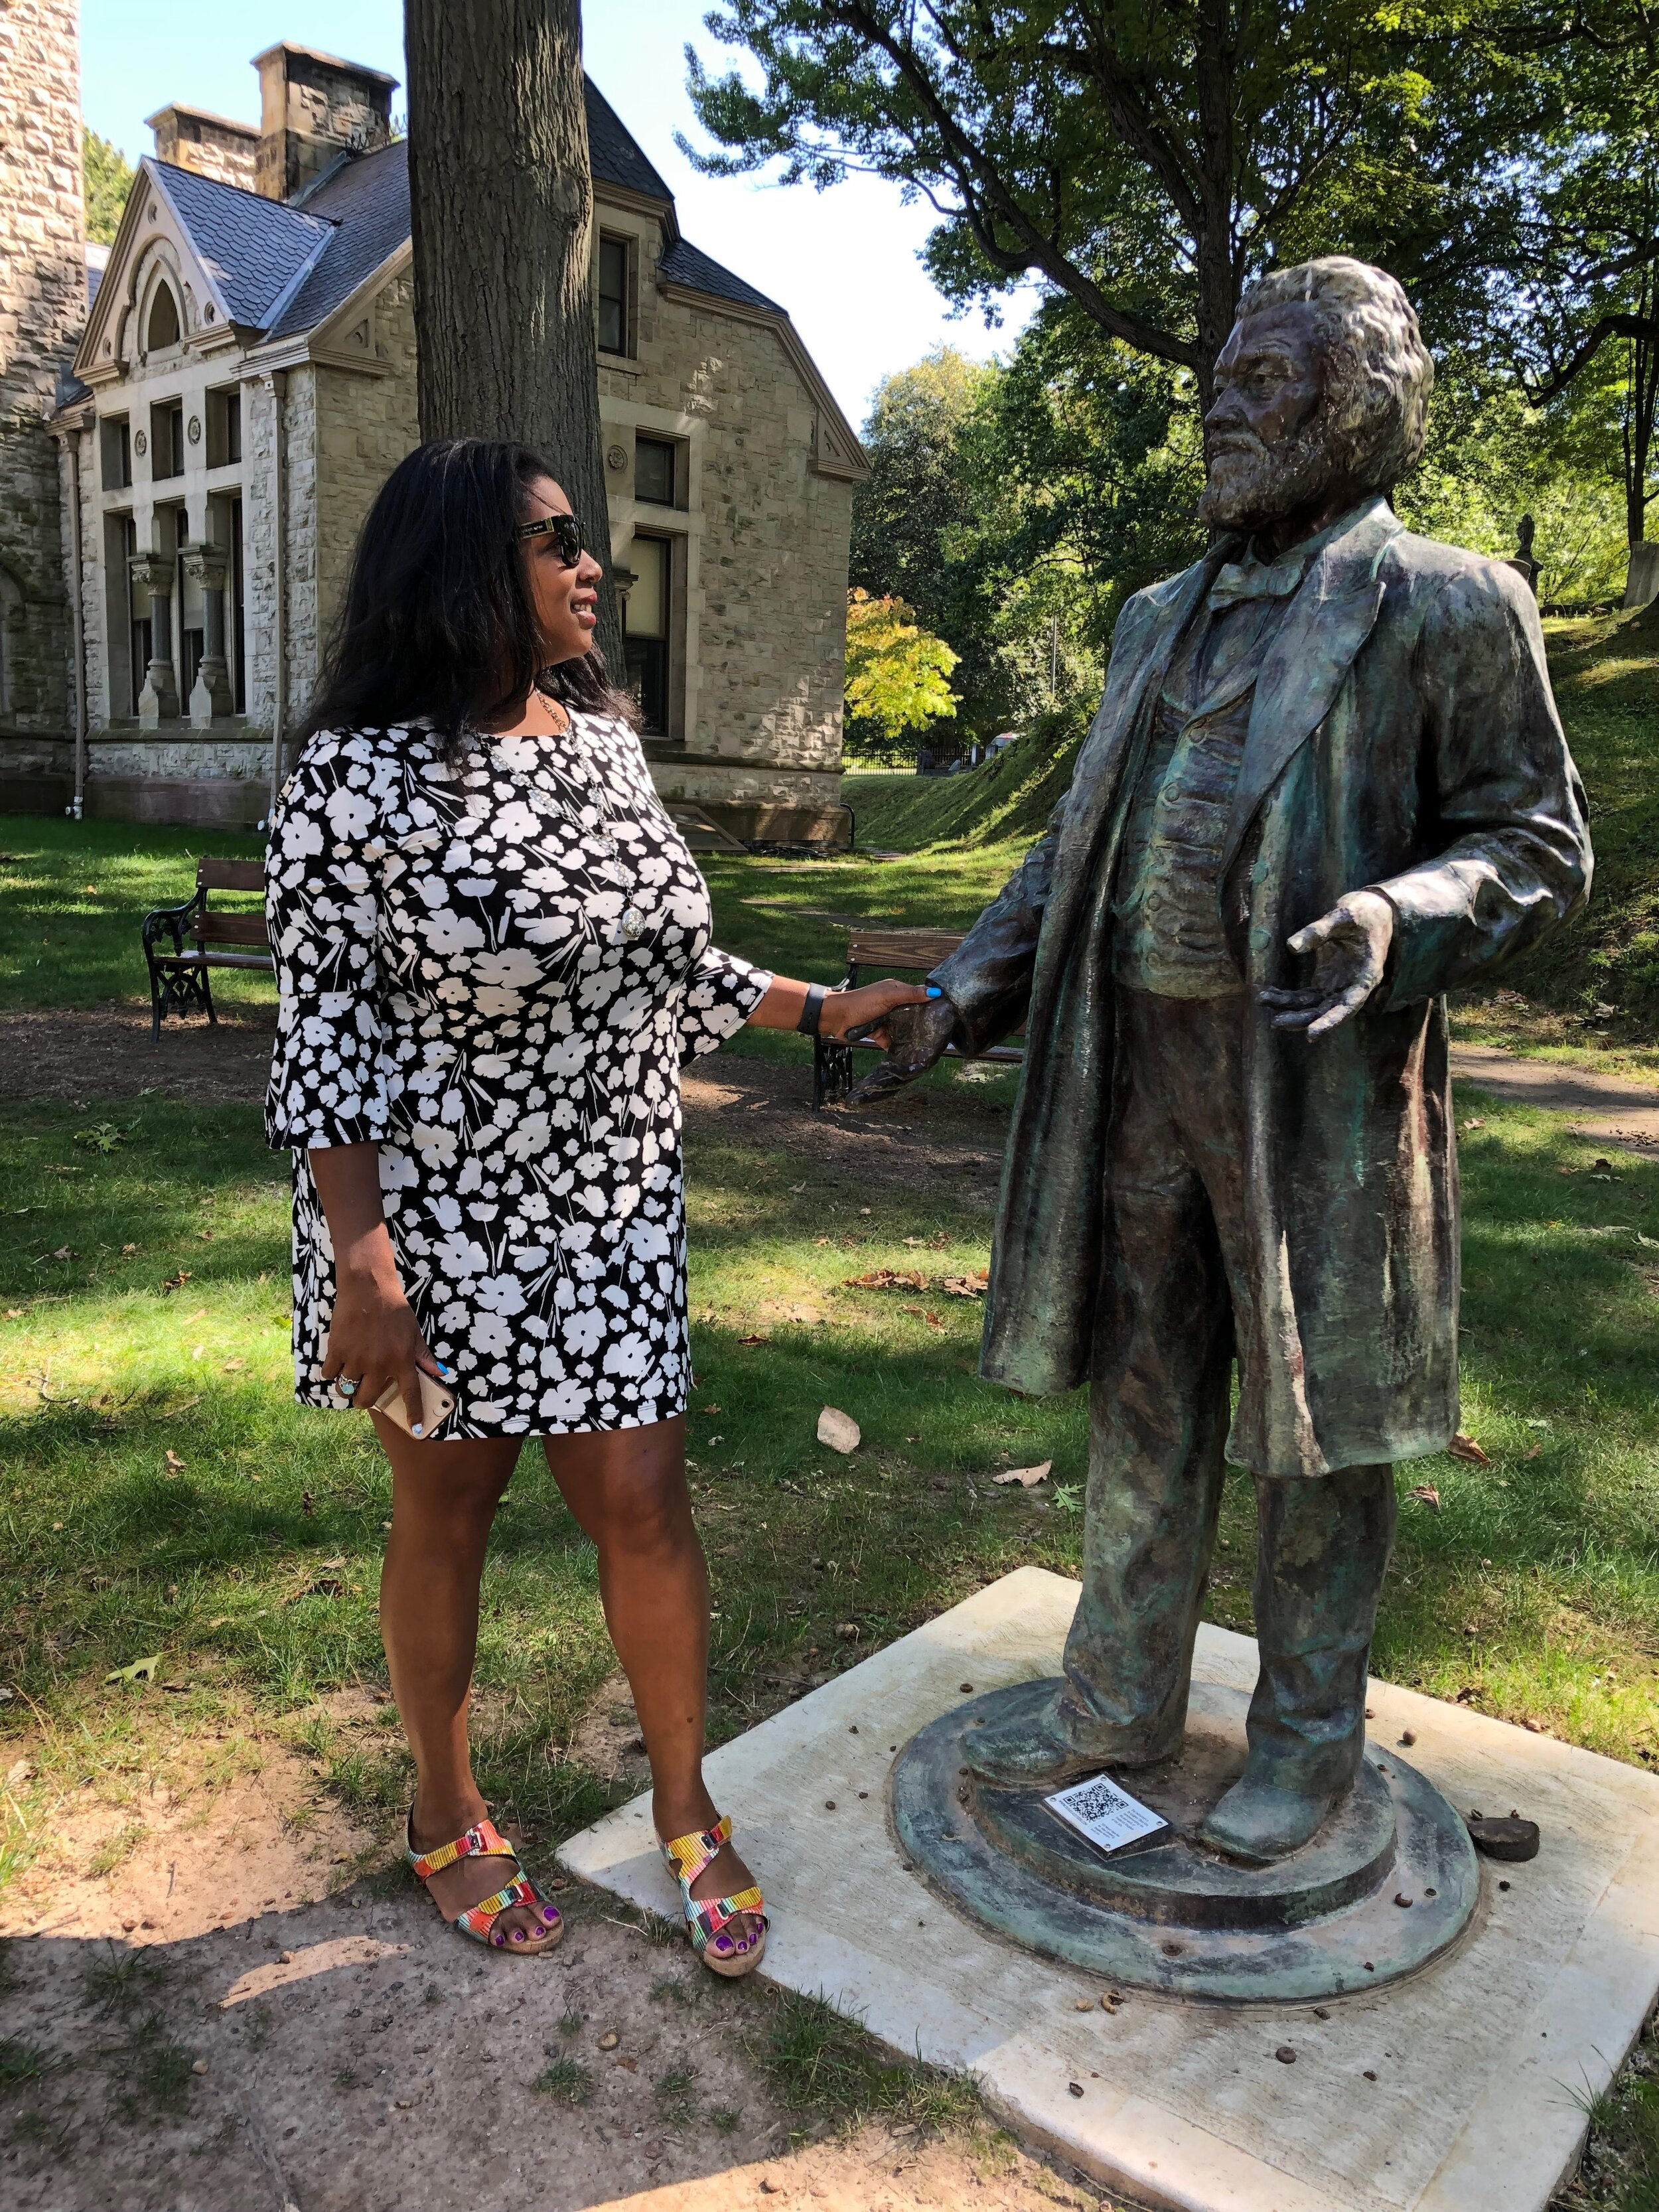 Rue Mapp visits Mount Hope Cemetery and a Frederick Douglass sculpture (sculpture by Olivia Kim).